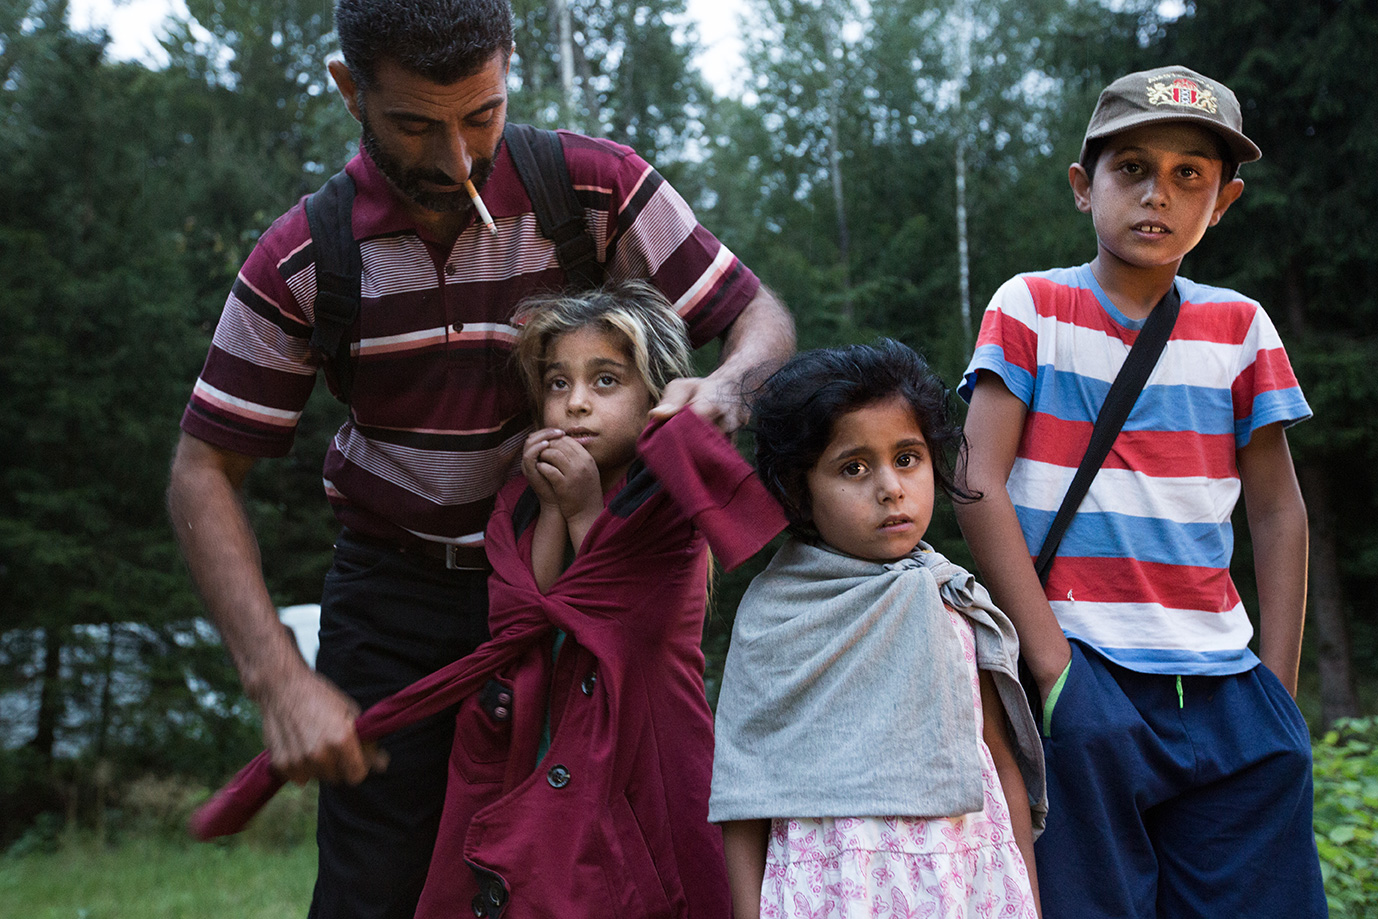 03_Syrian-Family-arrives-Germany-kicked-of-by-human-trafficker